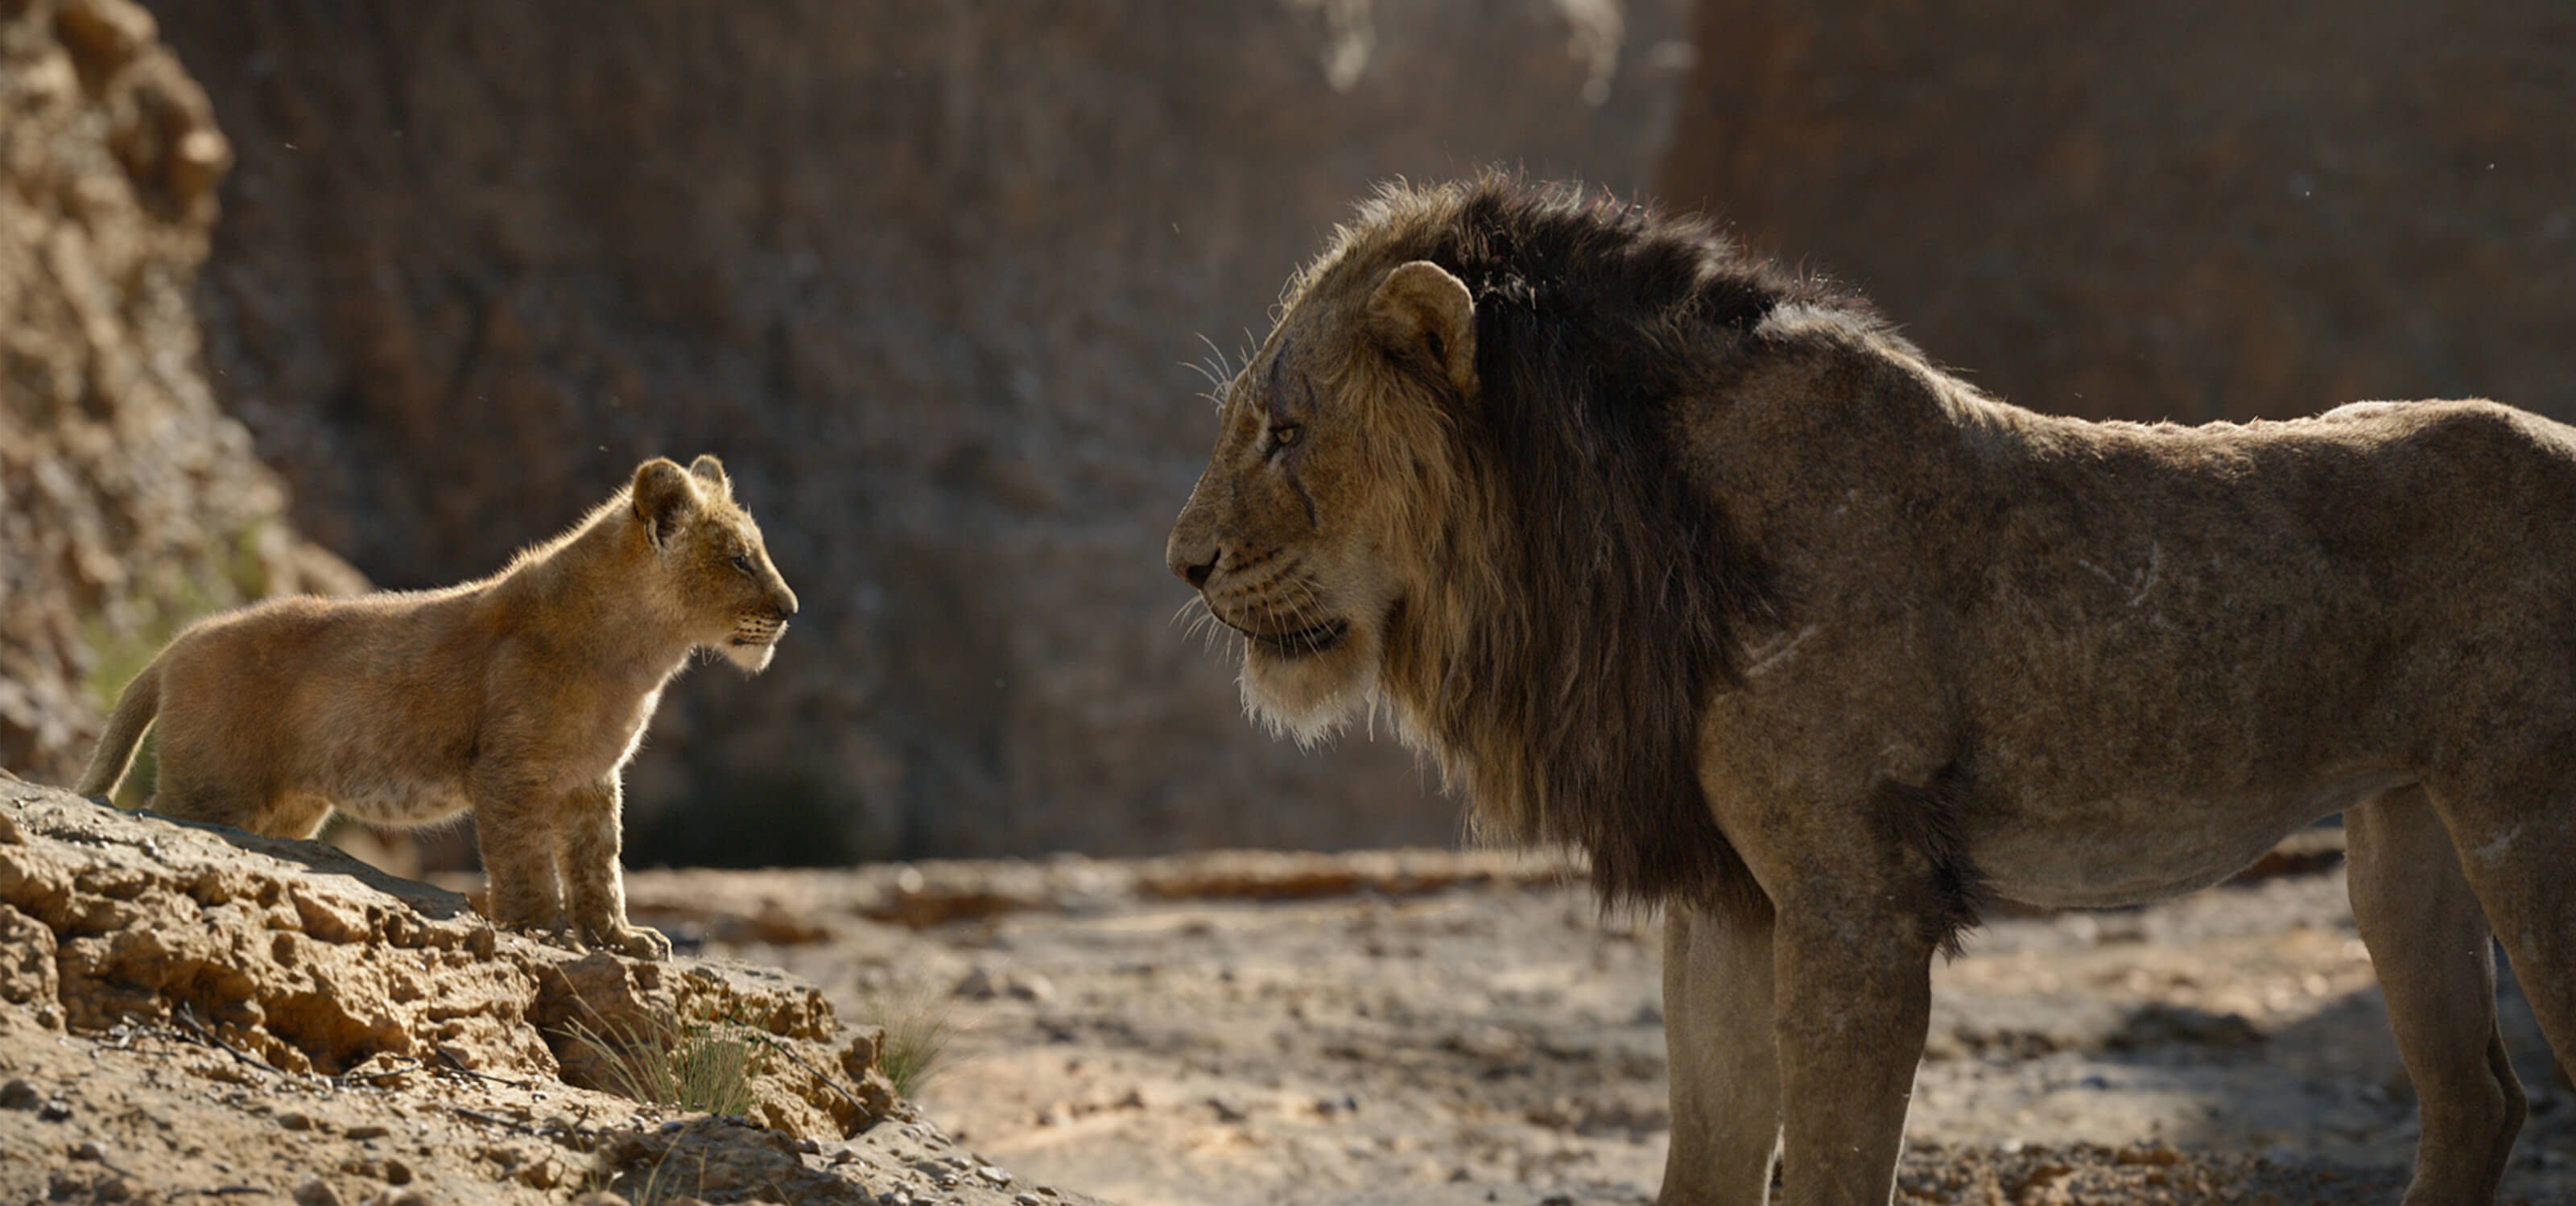 Simba and Mufasa speak to one another in the African savannah in The Lion King.